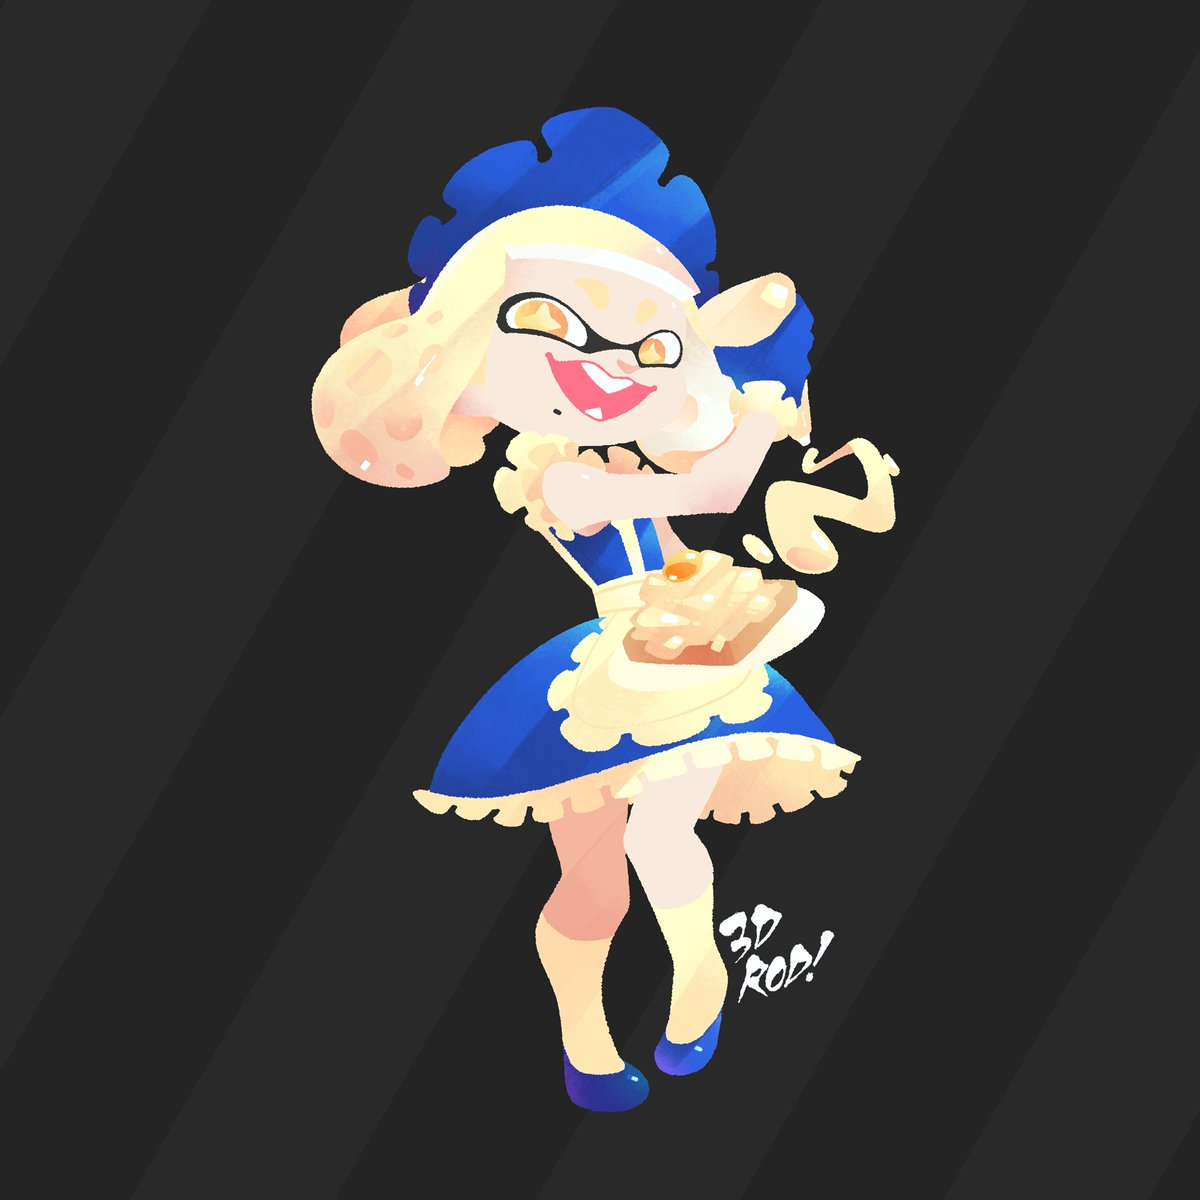 RT if you're #TeamMayo! Dip your fries in mayo, cowards! #Splatfest <br>http://pic.twitter.com/0oSKMmW3Z6